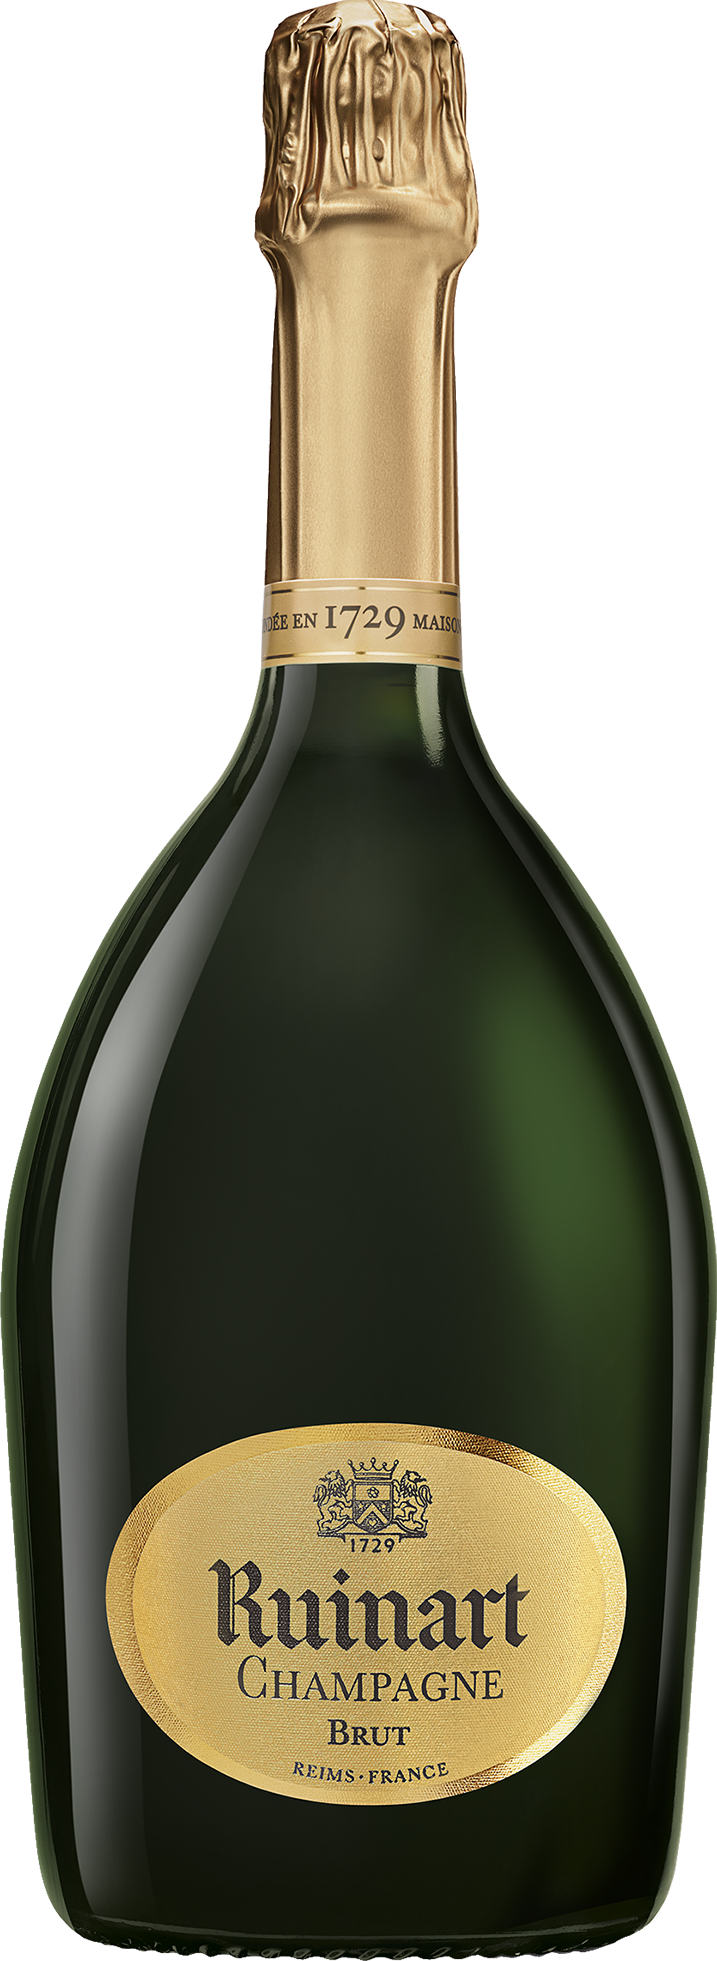 Ruinart Maison, the first established house of Champagne, since 1729